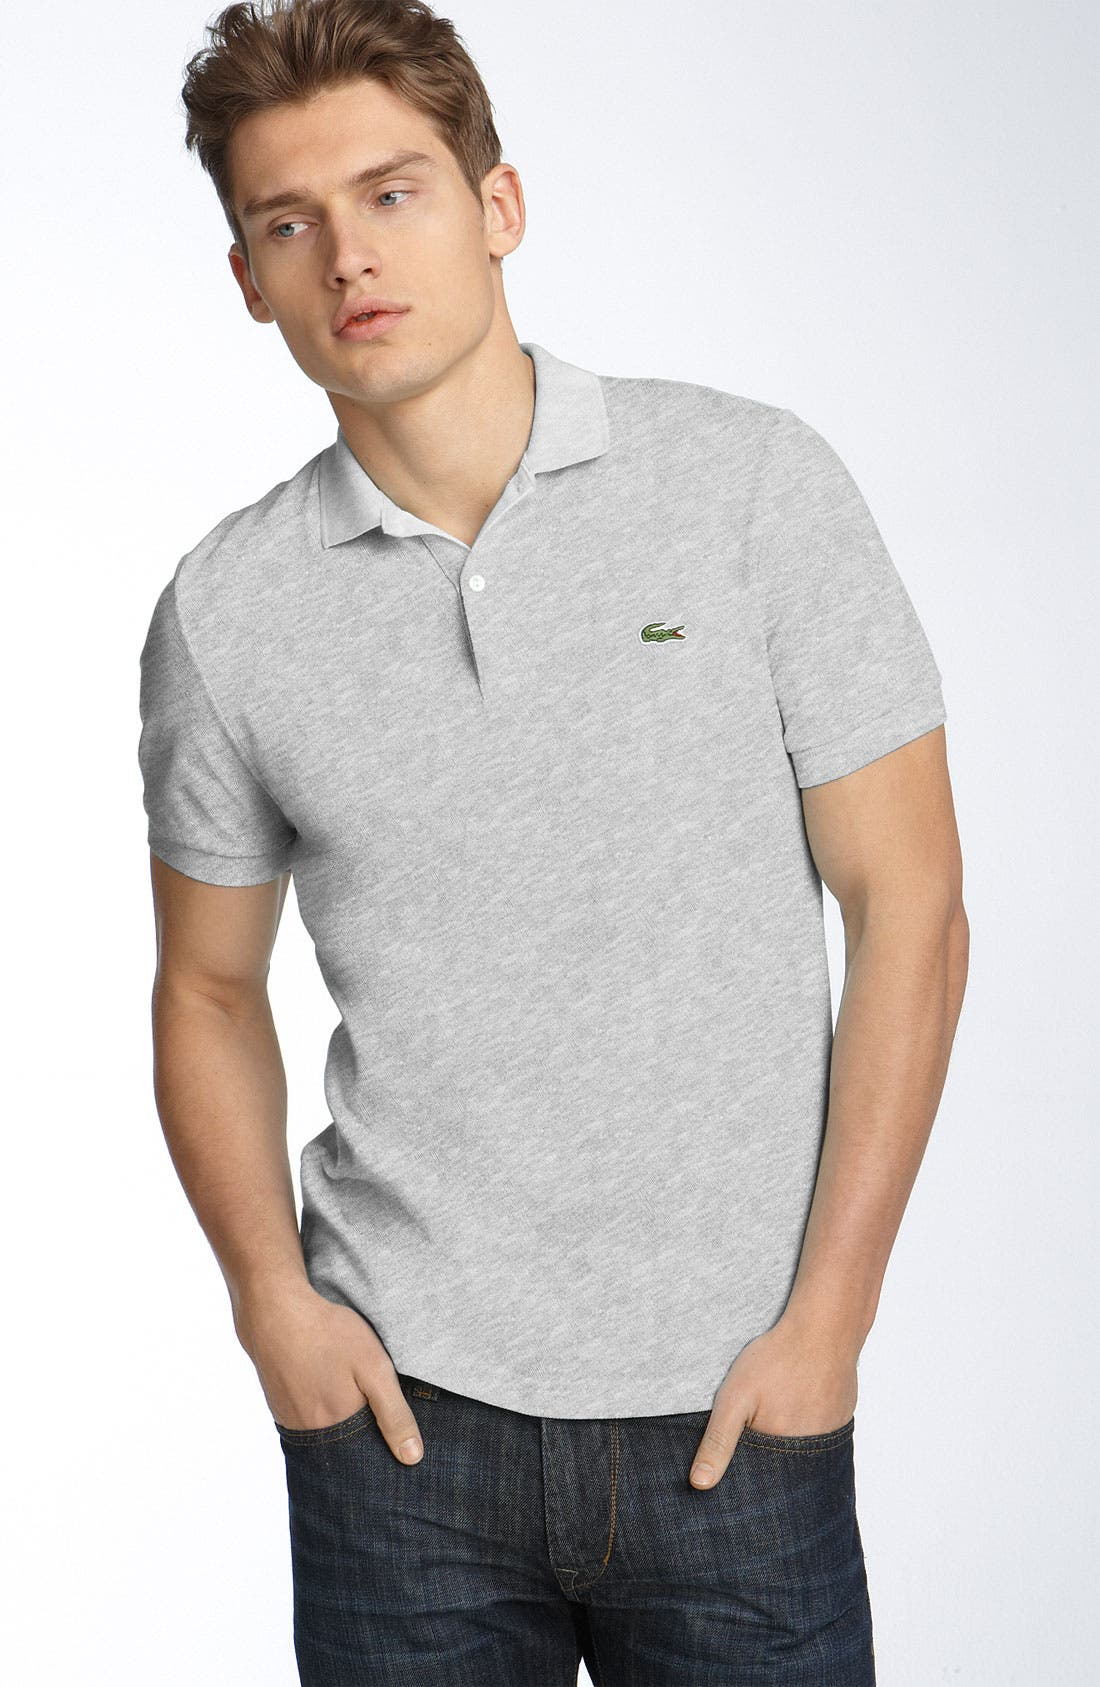 Main Image - Lacoste L!VE Trim Fit Piqué Polo